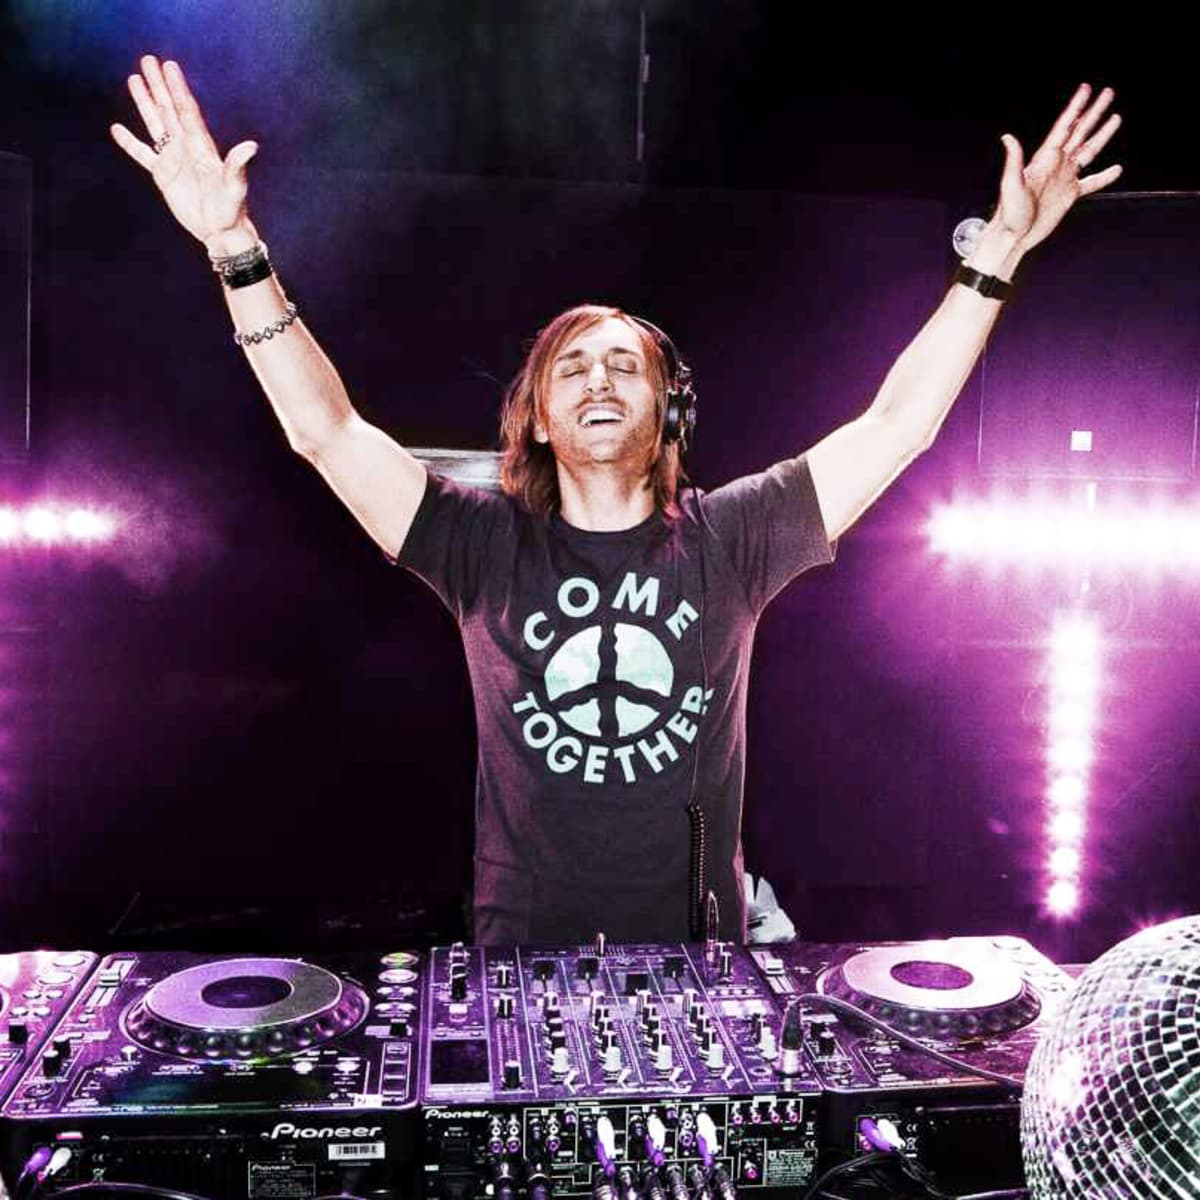 News_David Guetta_Jan 10